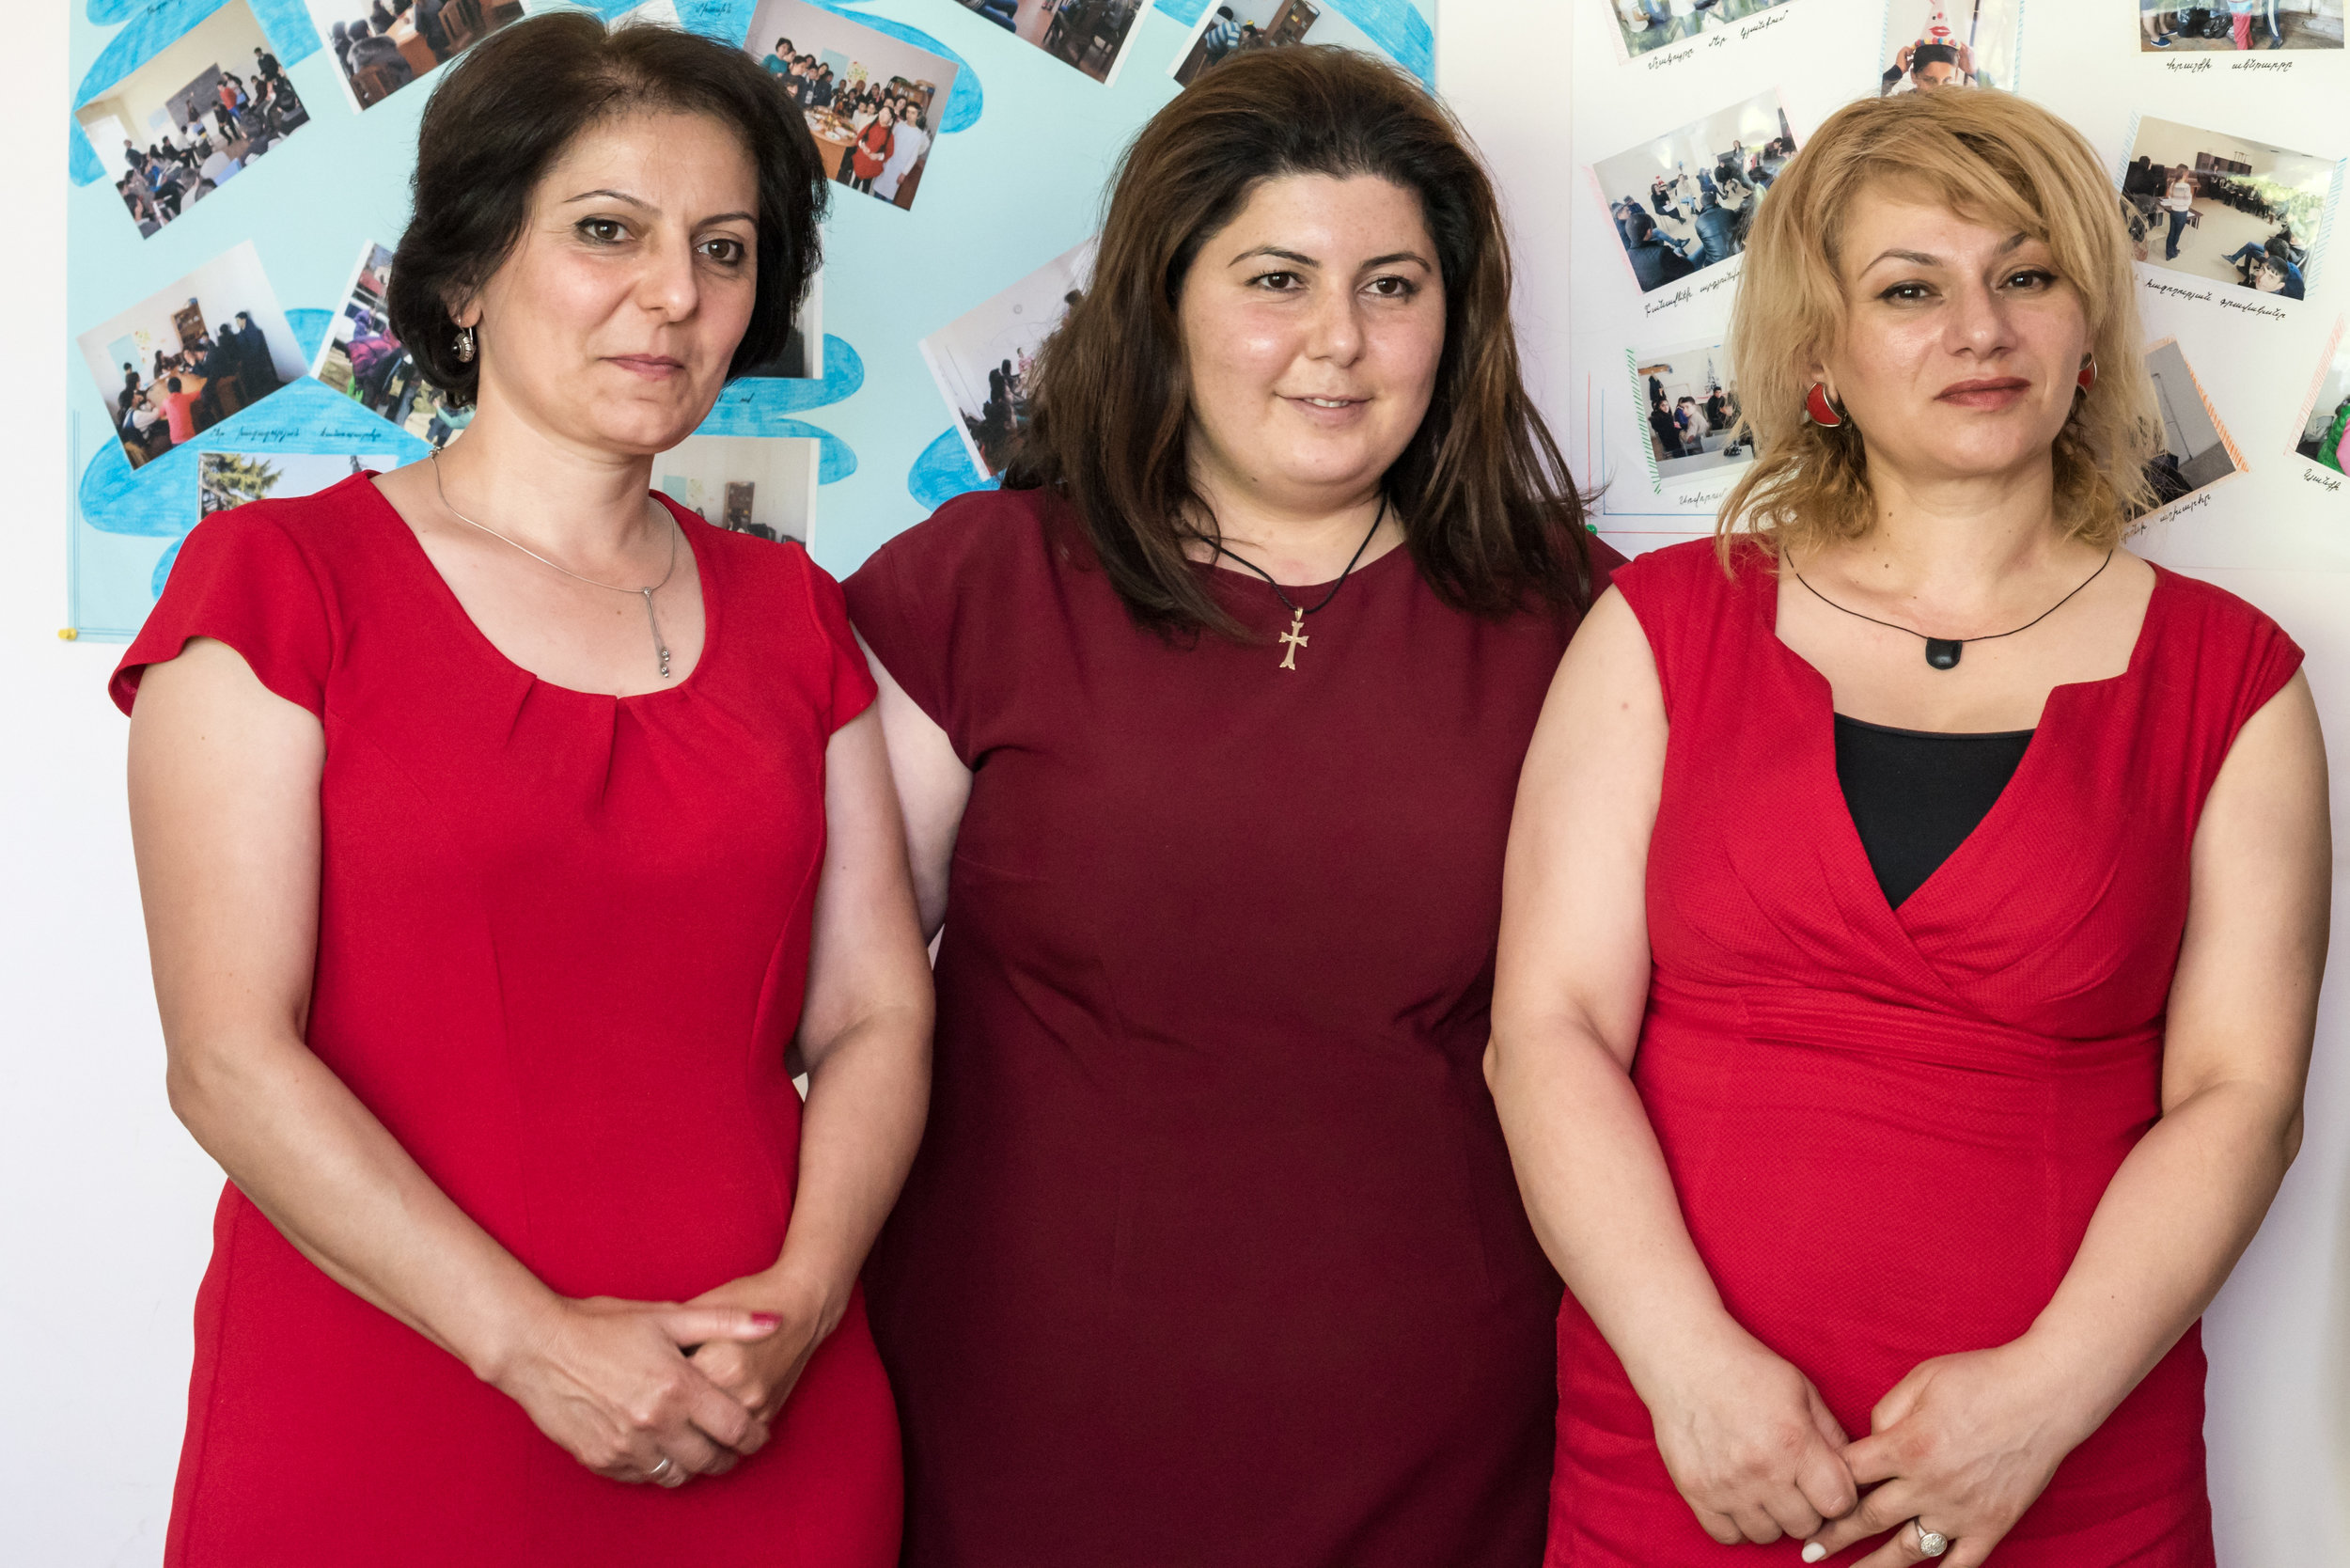 Therapists at the Community Social Services Center, Berd, Armenia, are working to help individuals and families in need and to improve society.